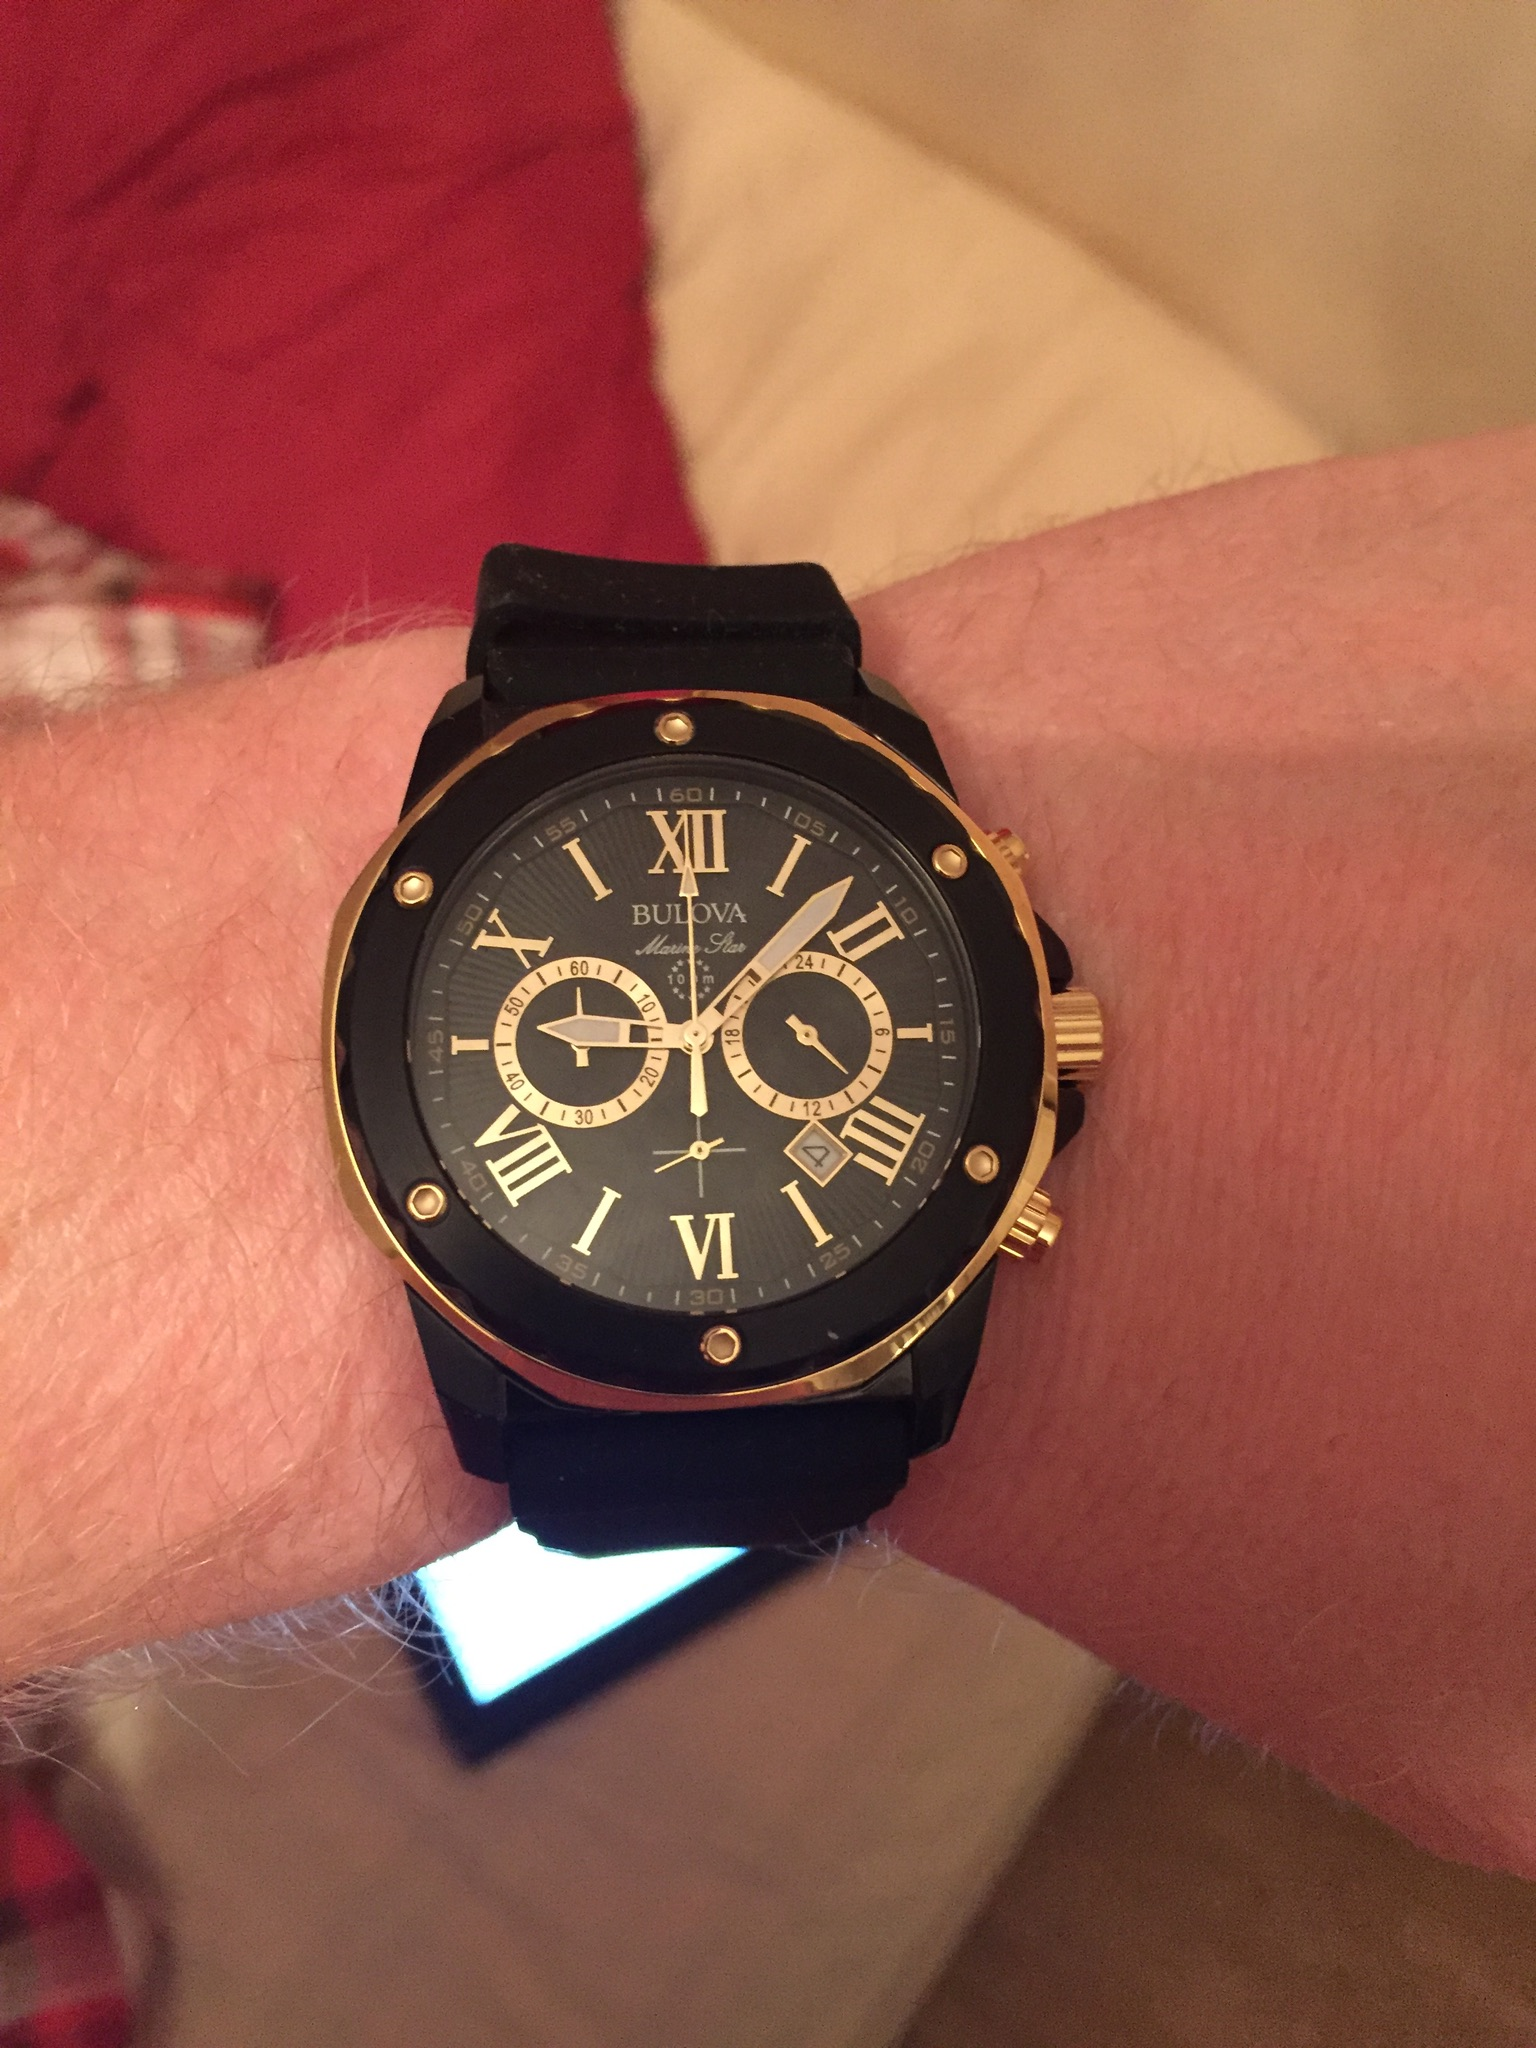 ebadffa53 Ive been eyeing up this watch for a while and decided to treat myself. Im  so glad I did. This watch is stunning. The black and gold combo works  together so ...